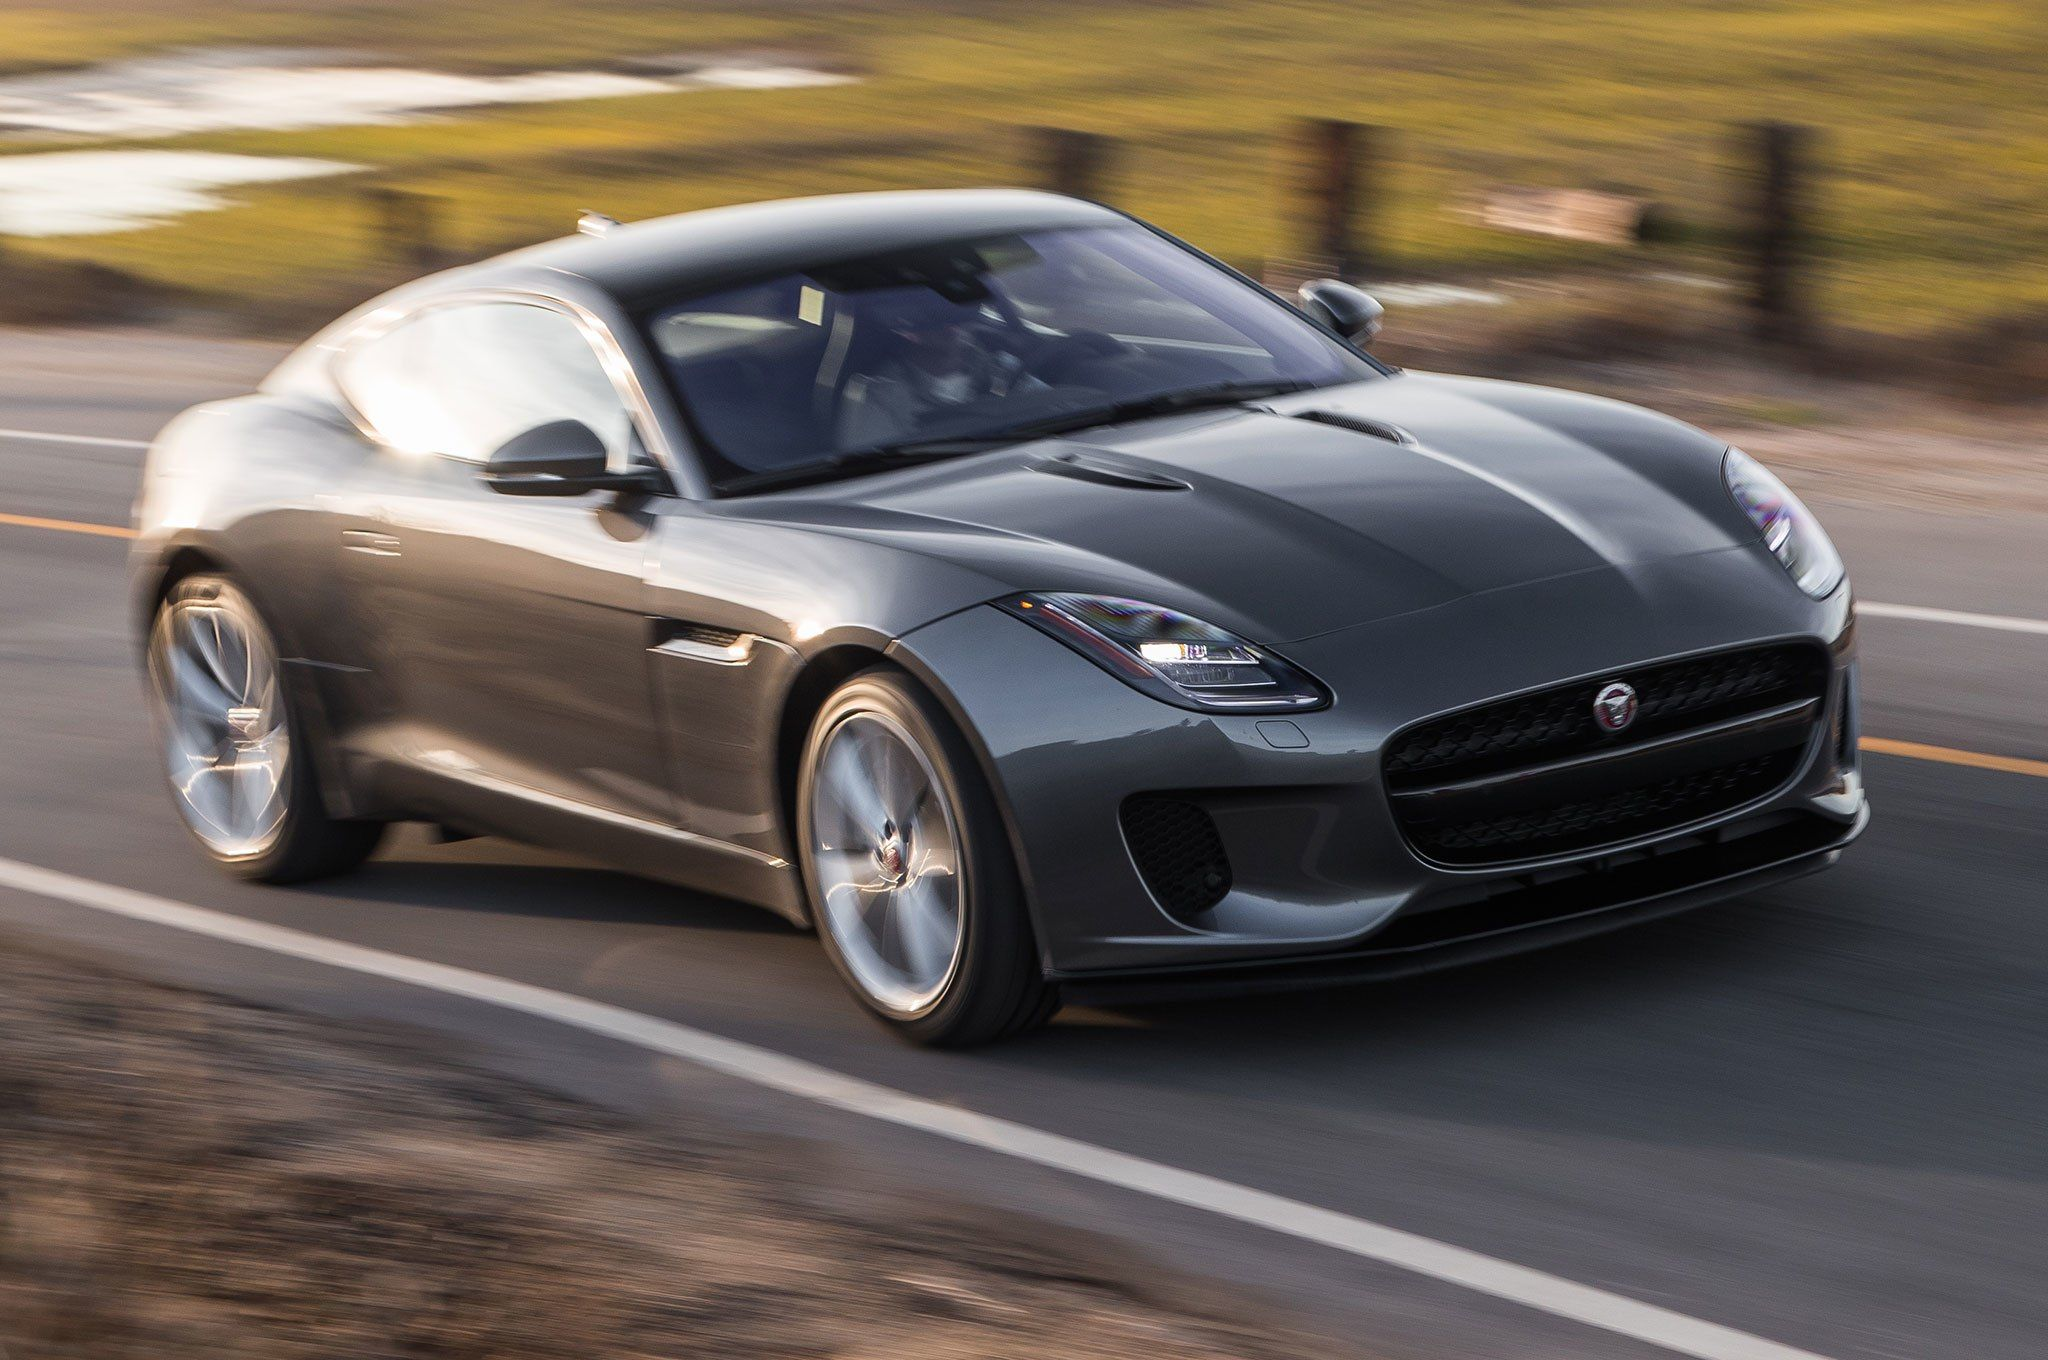 2018 Jaguar F Type Coupe Turbo Four First Test In 2020 Jaguar F Type Jaguar Coupe